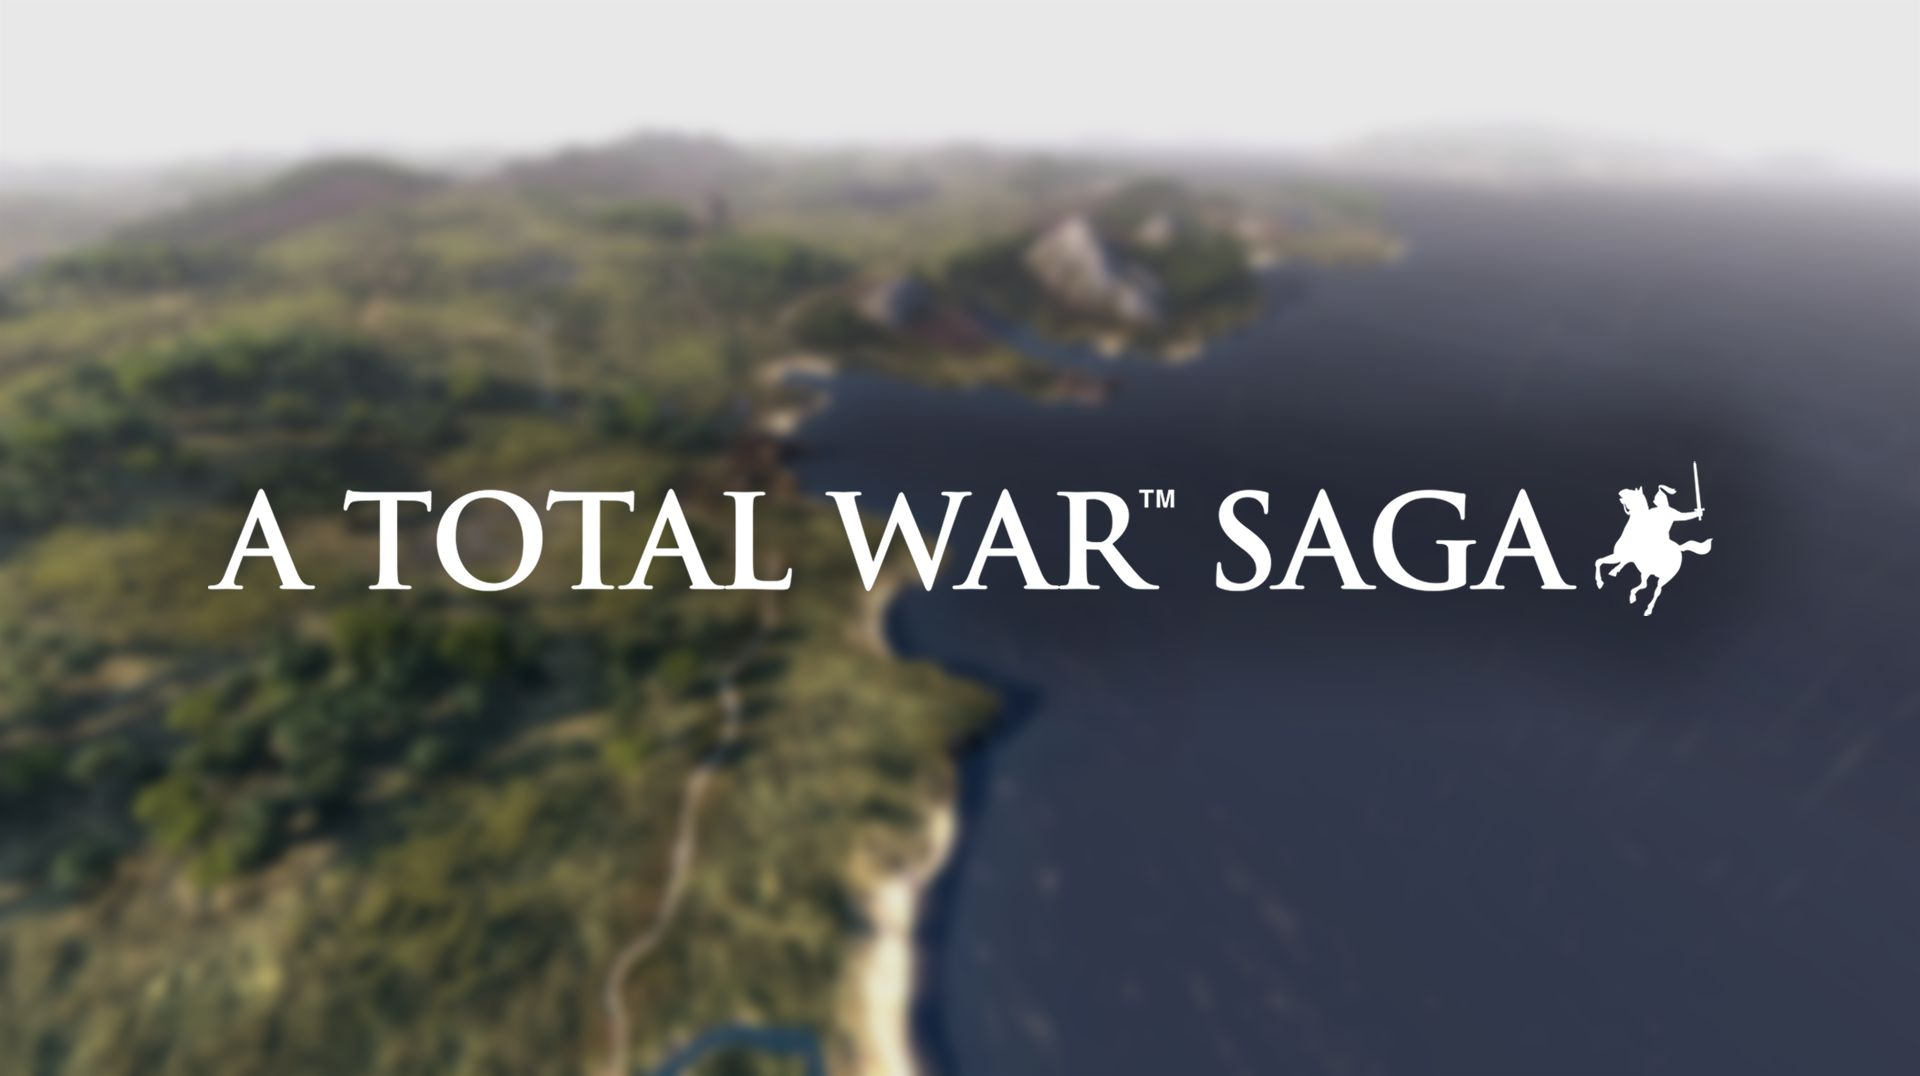 total-war-saga-logo__05-07-17.jpg